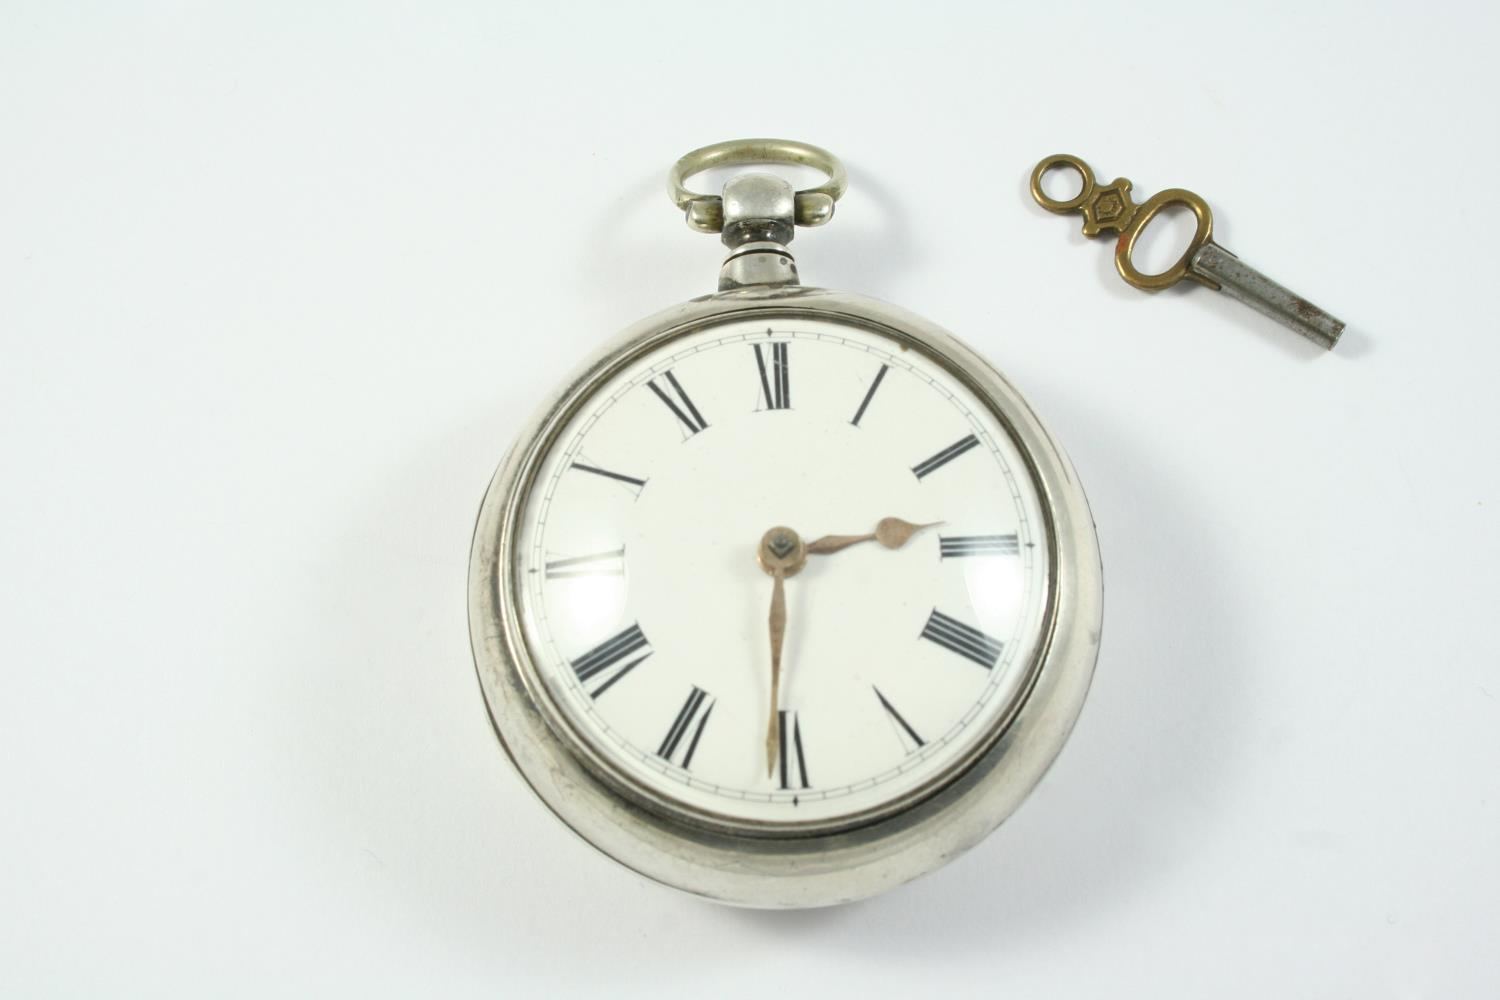 A SILVER PAIR CASED VERGE FUSEE POCKET WATCH the white enamel dial with Roman numerals, the movement